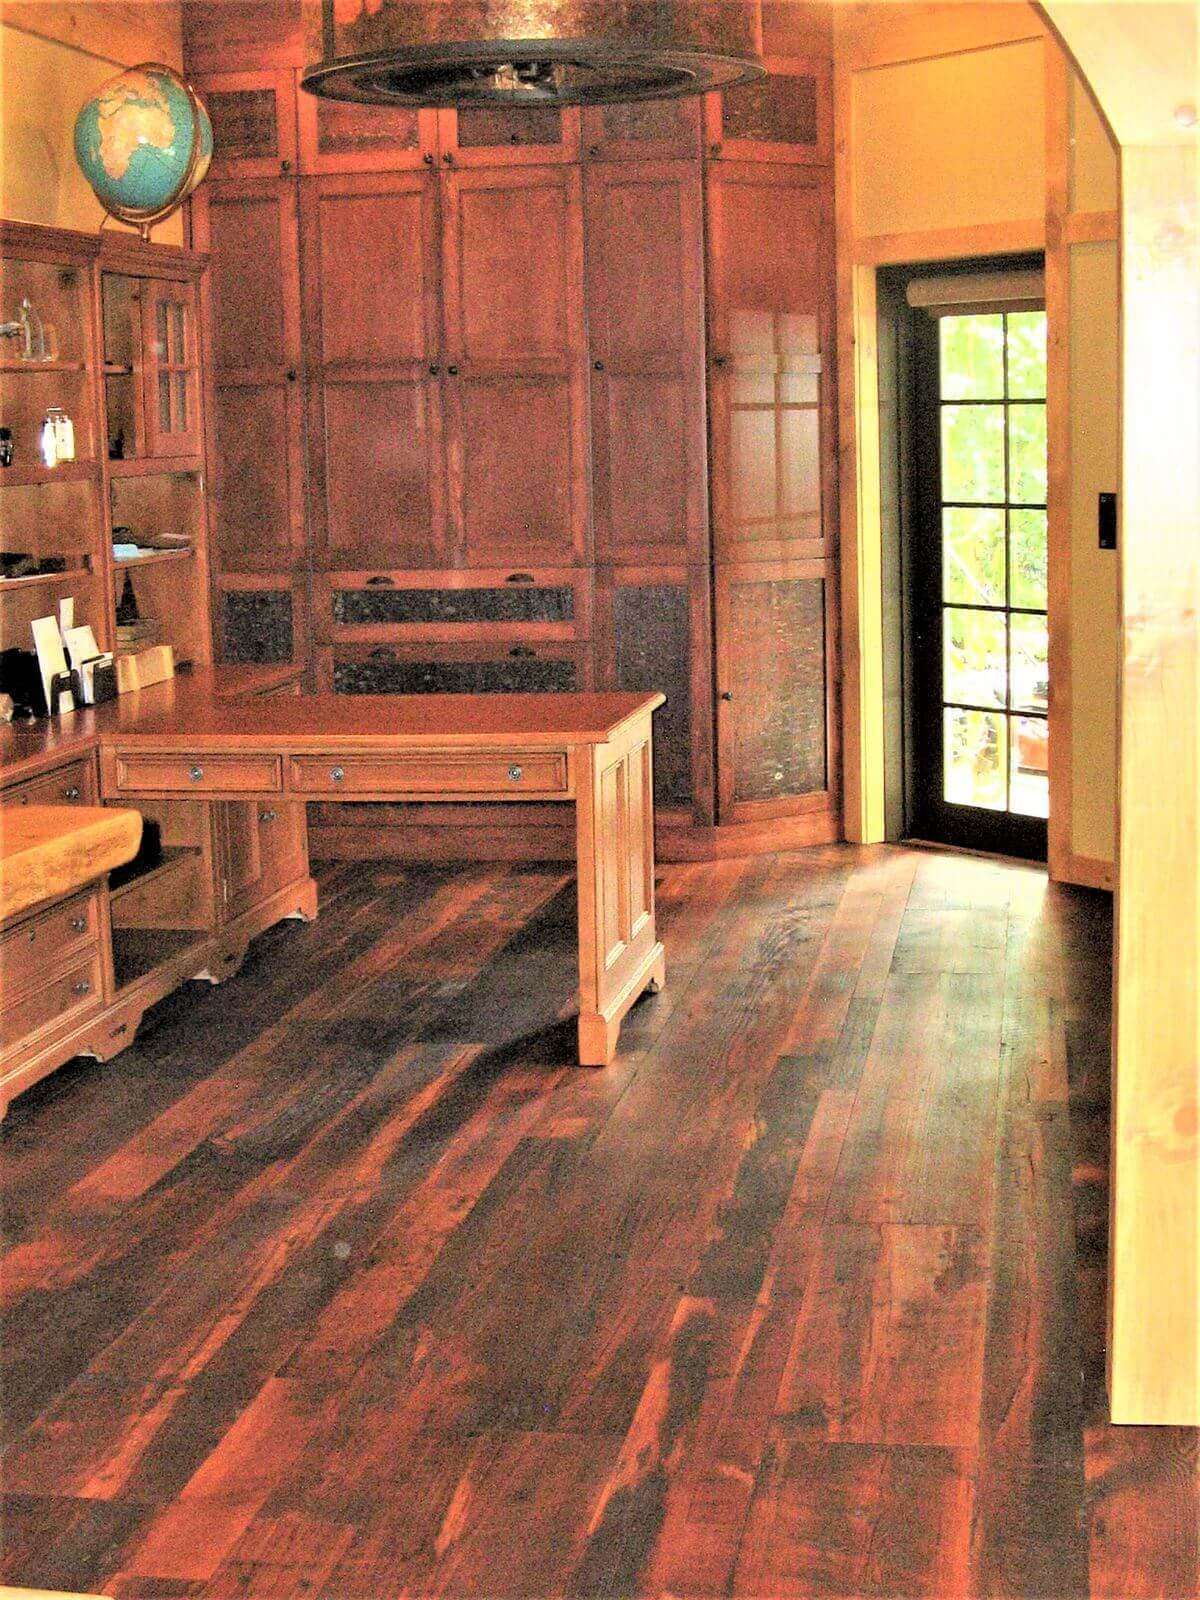 Antique heart pine character floor with woca rhode island brown oil finish